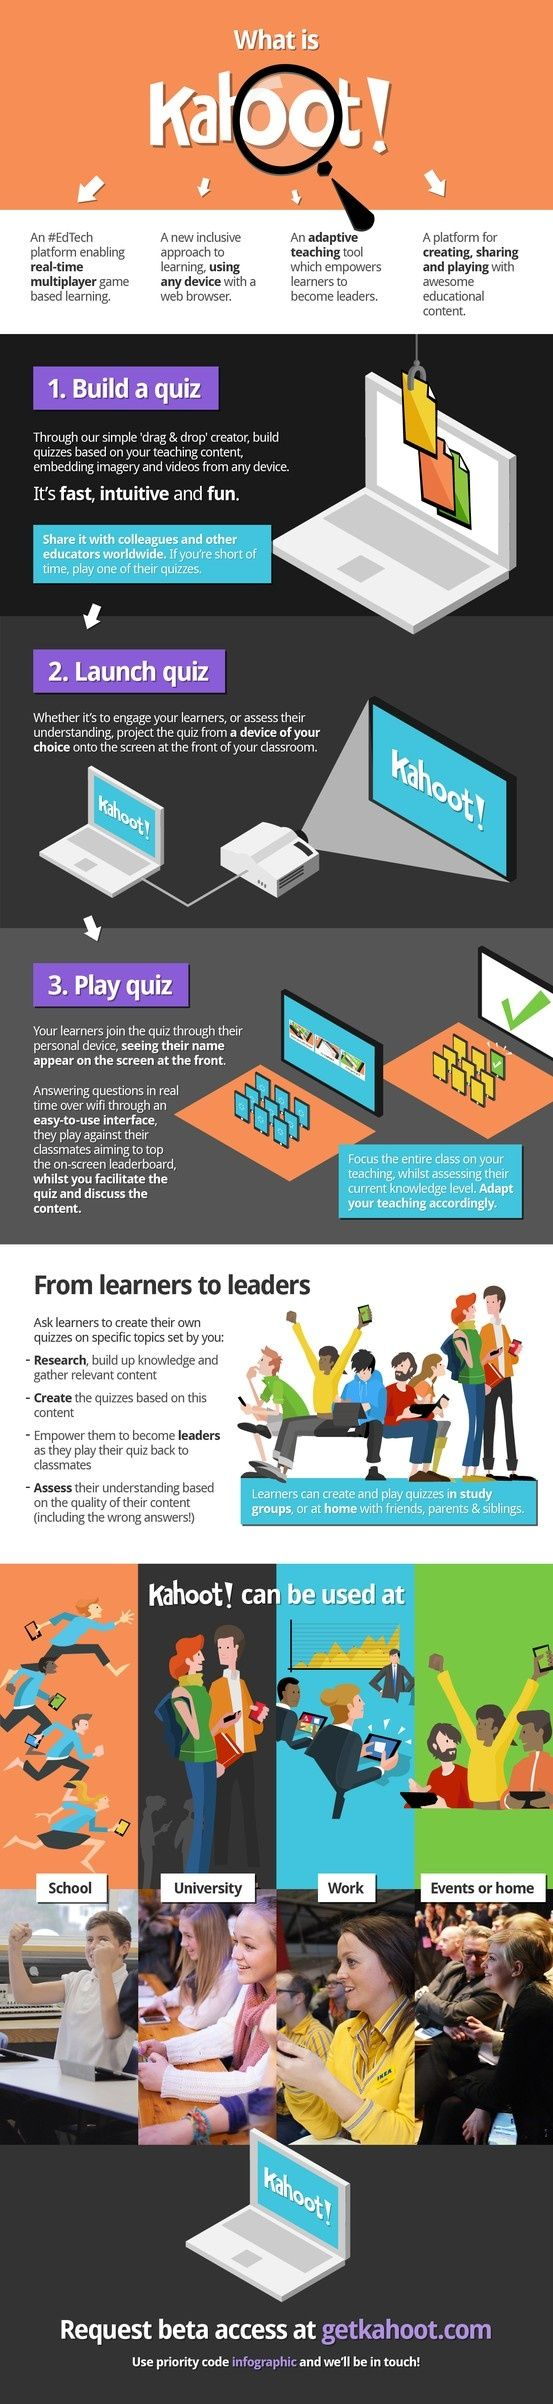 Kahoot guide.   Kahoot allows teachers to create quizzes and surreys that includ…